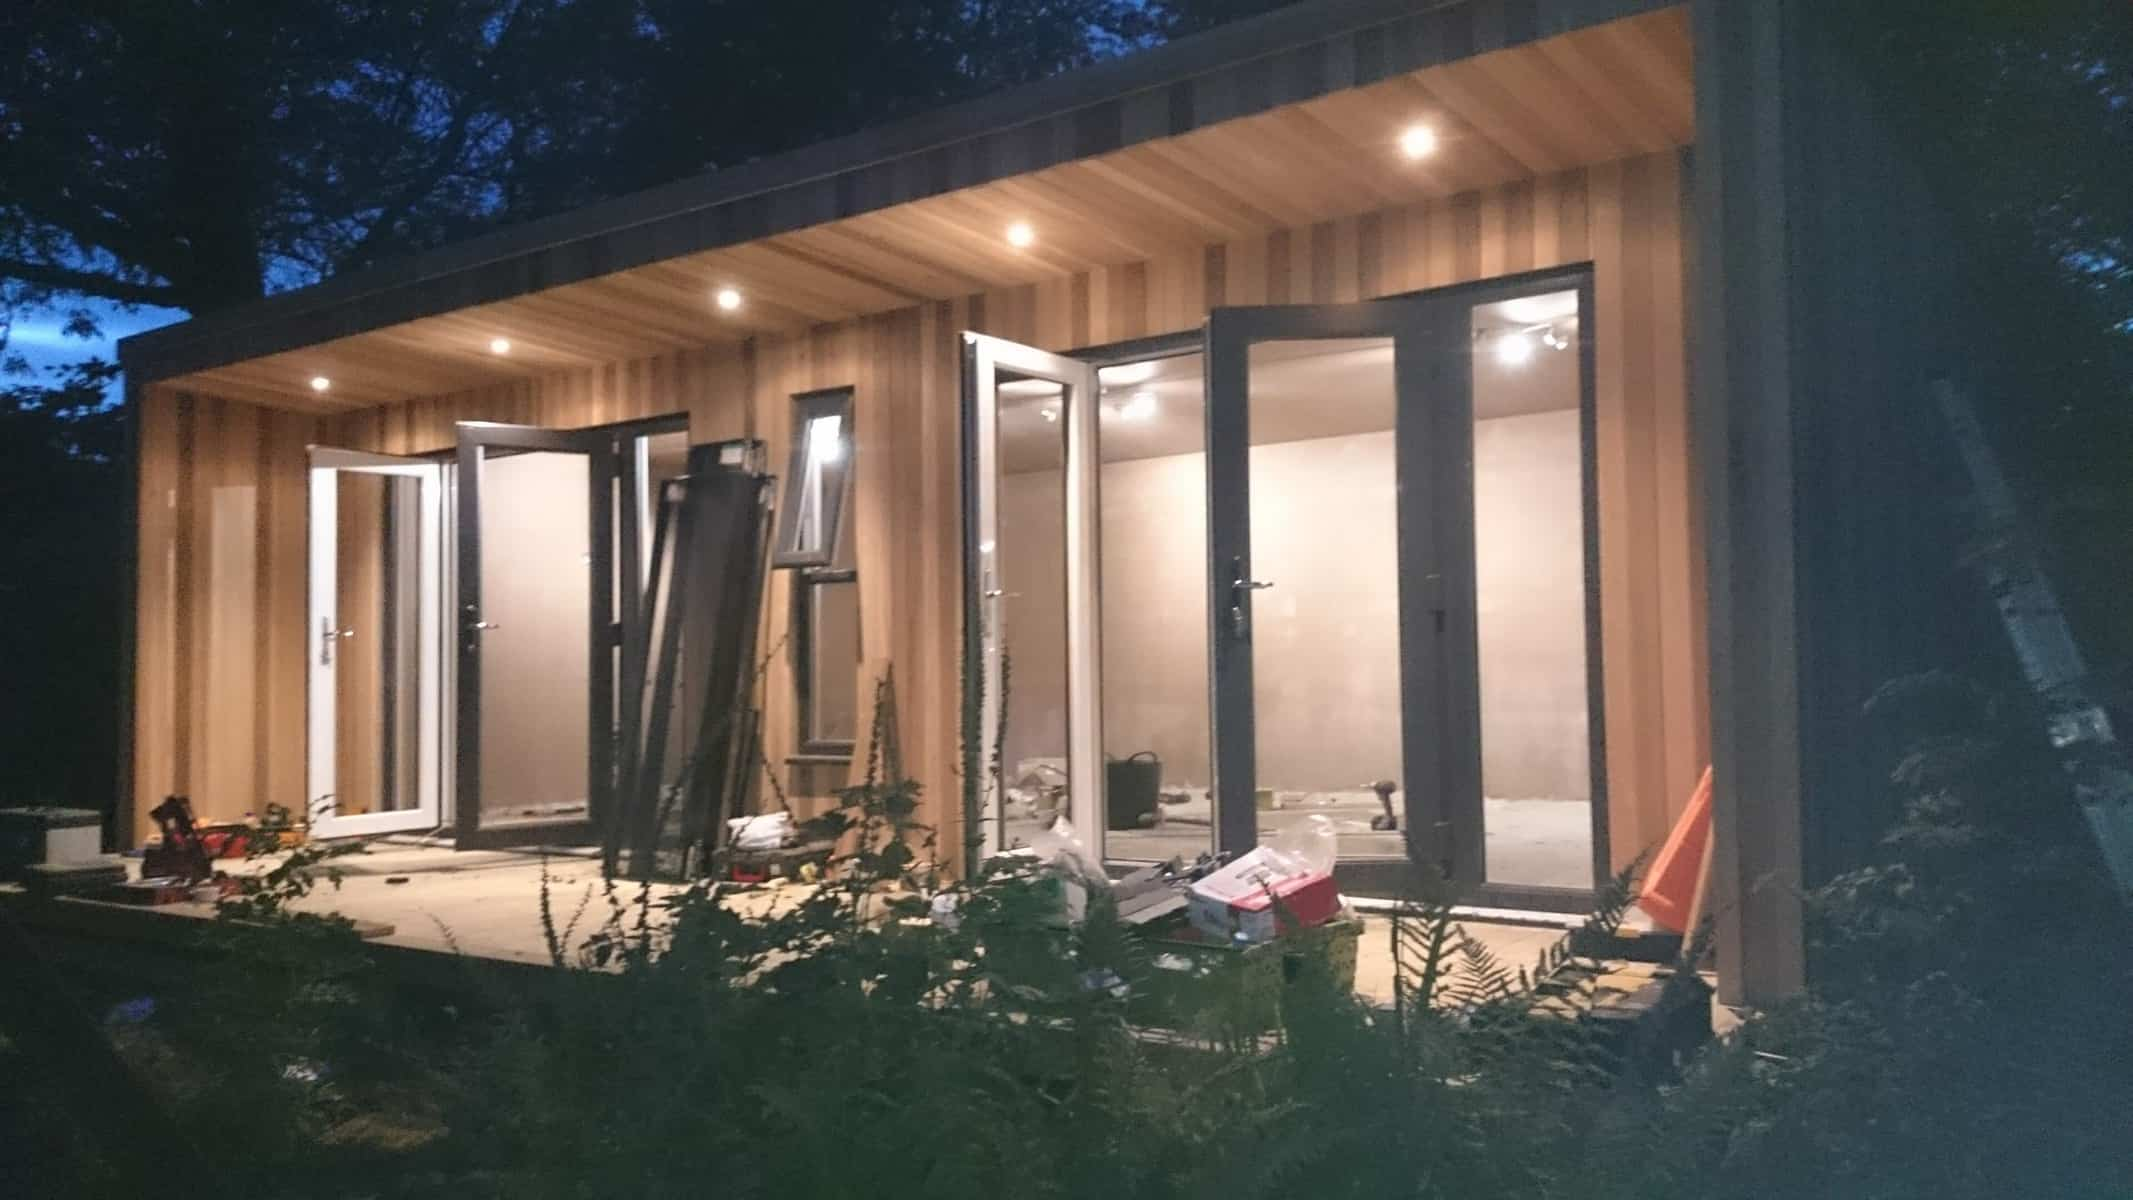 Garden Rooms Prices - Guide to Costs